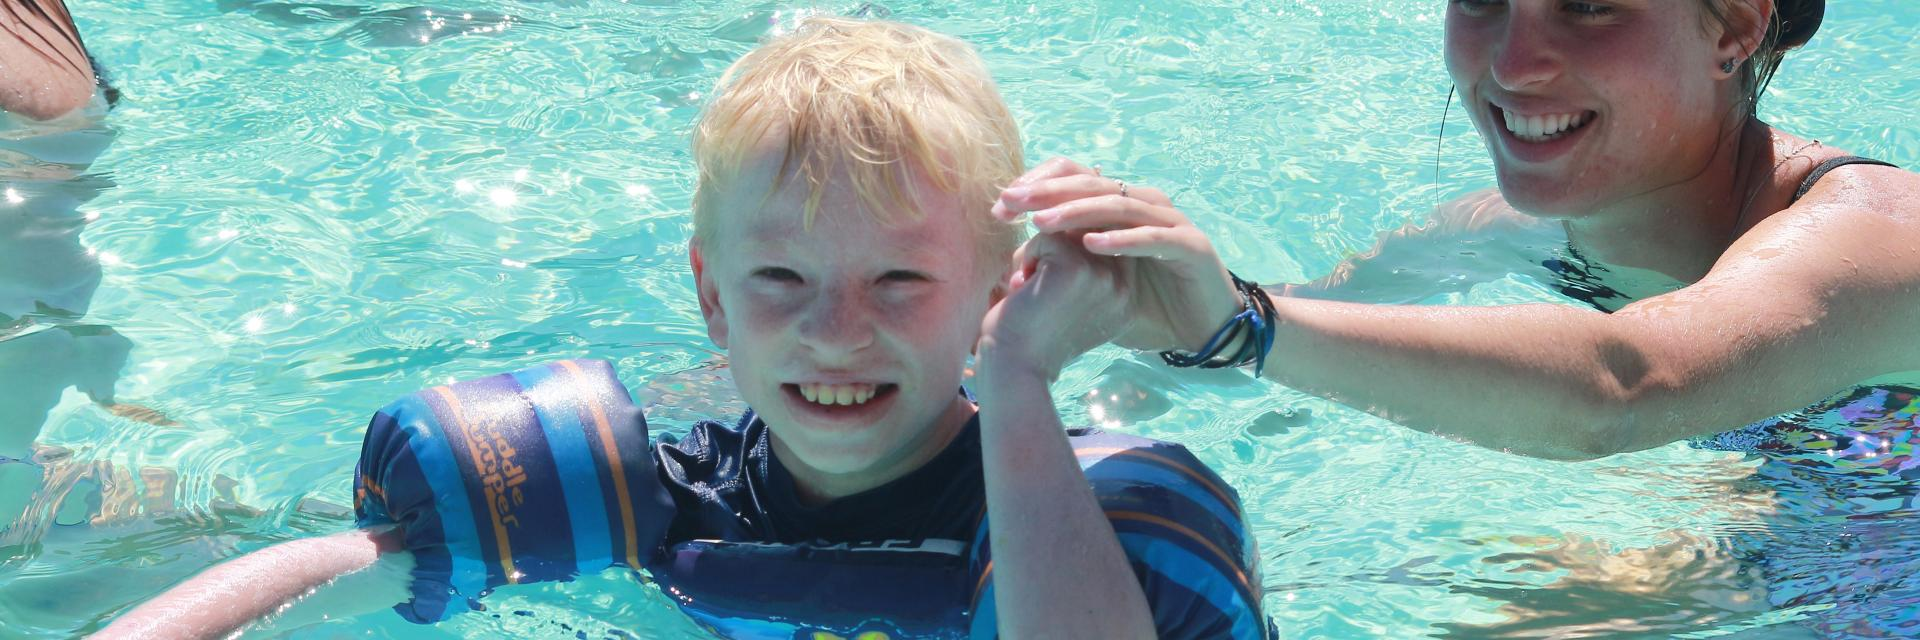 Boy smiling. enjoying the pool.